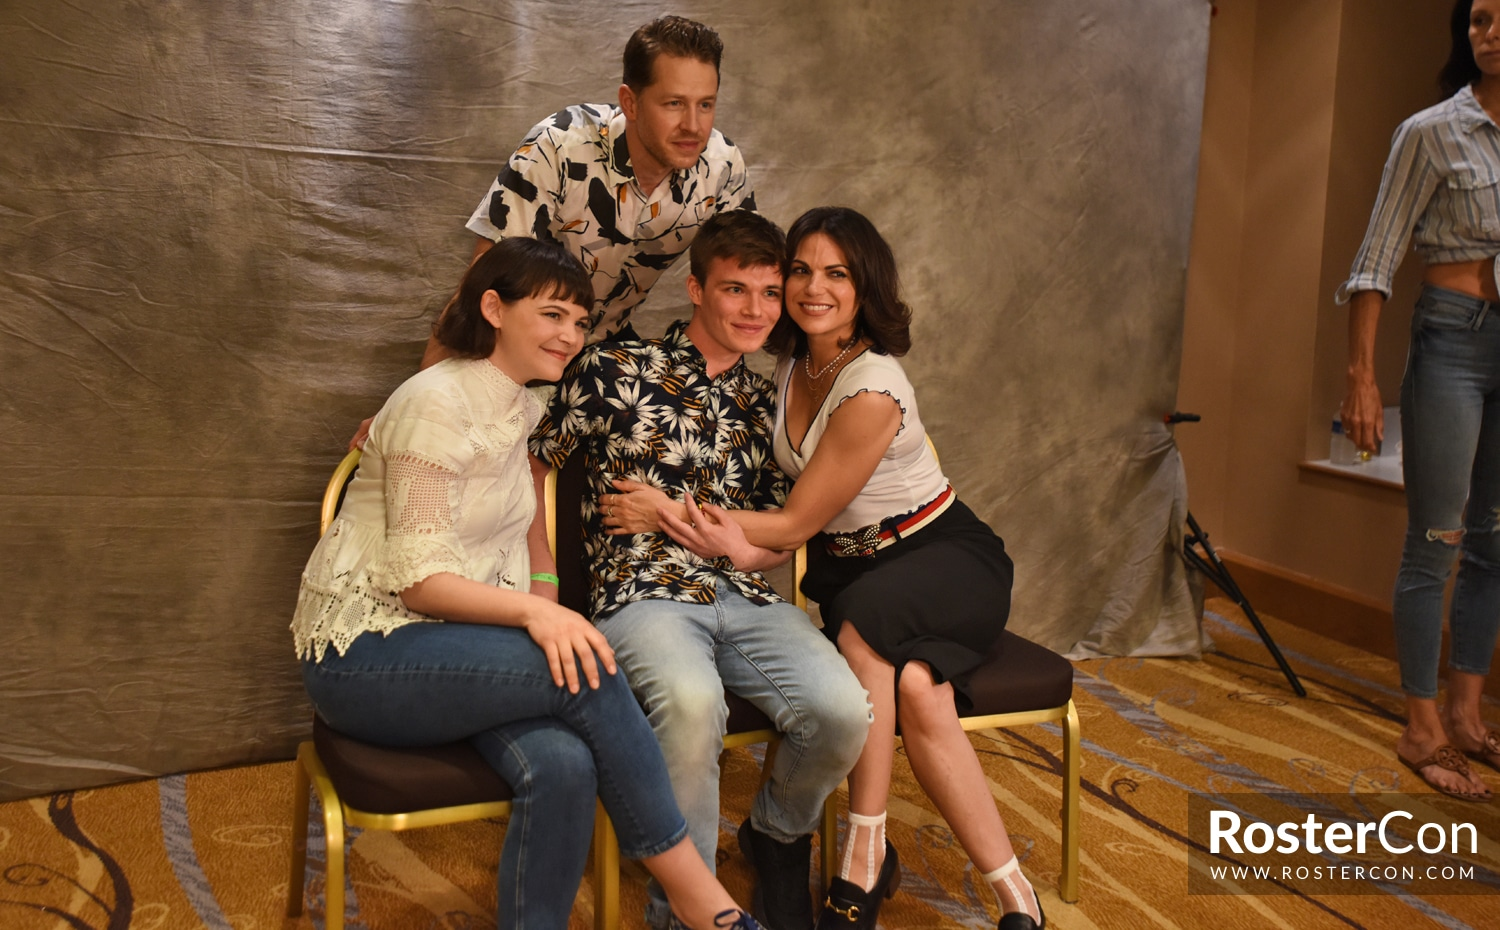 Ginnifer Goodwin, Josh Dallas & Lana Parrilla - The Happy Ending Convention 3 - Once Upon A Time